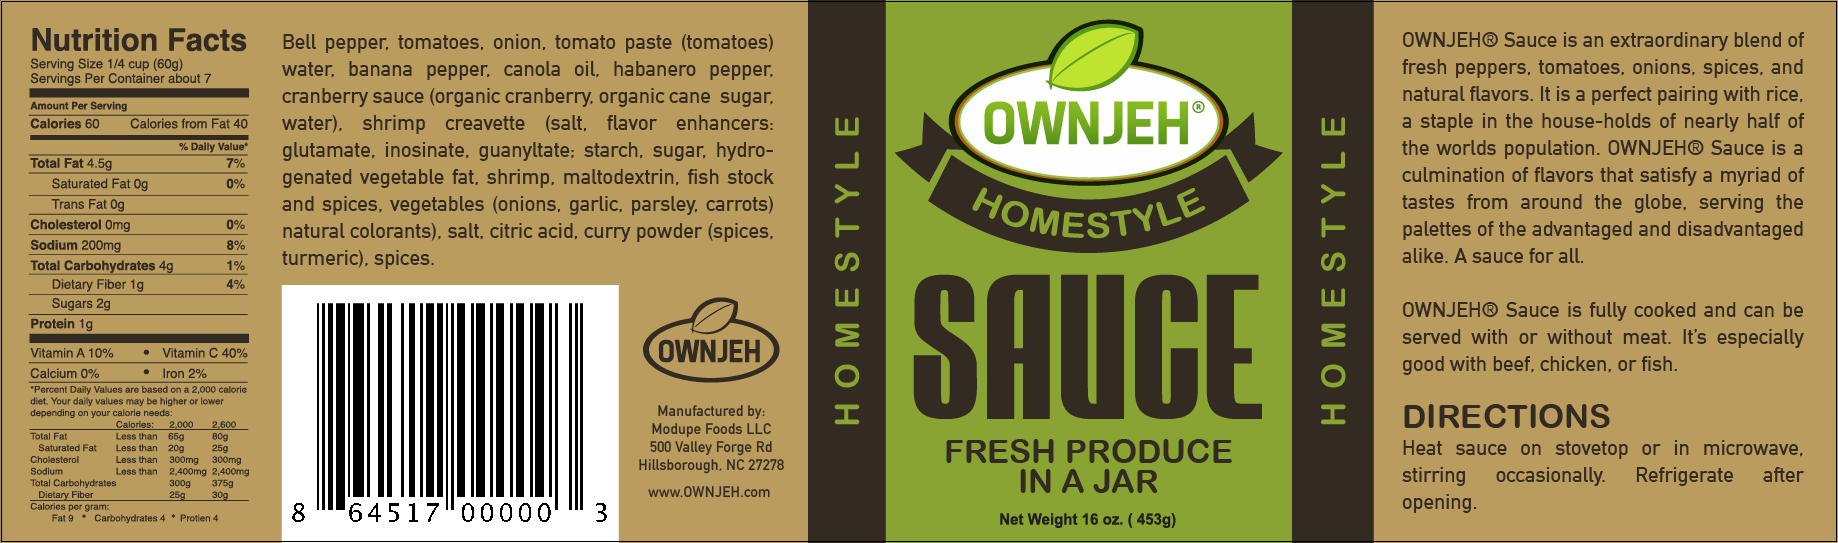 ownjeh-homestyle